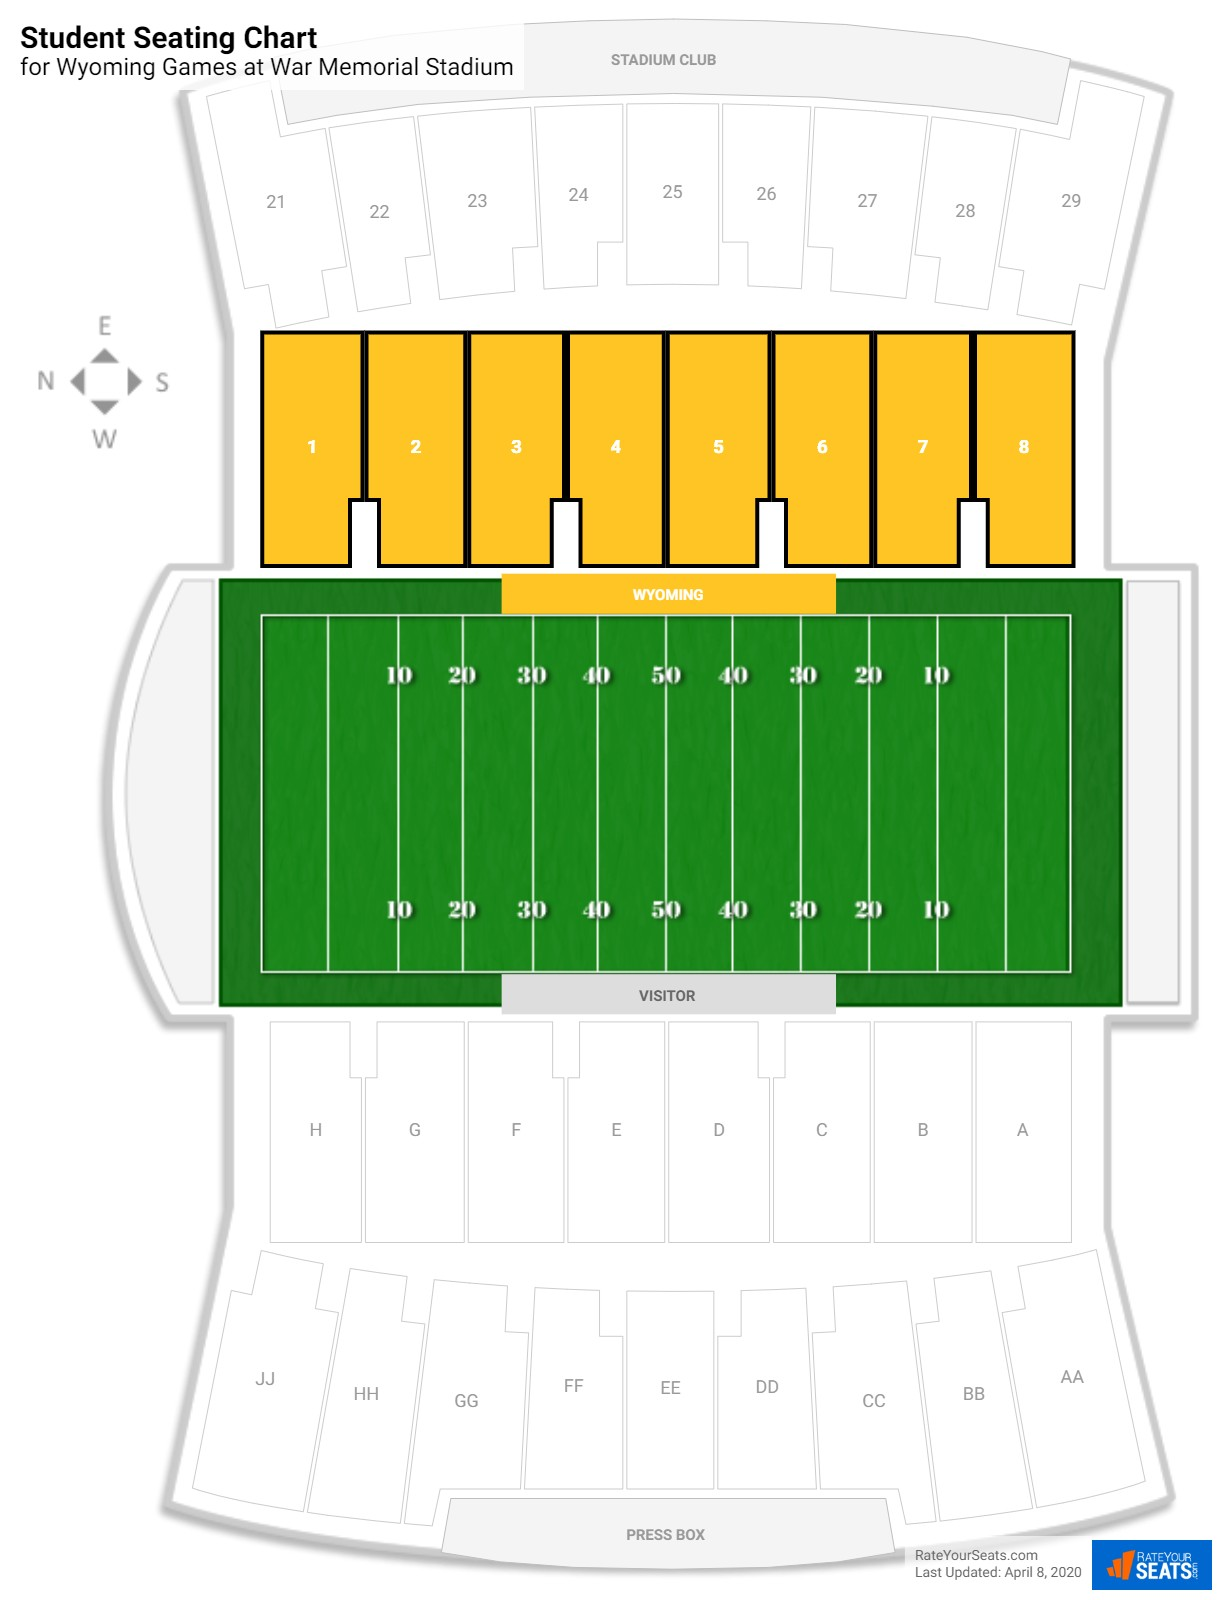 War Memorial Stadium Student seating chart